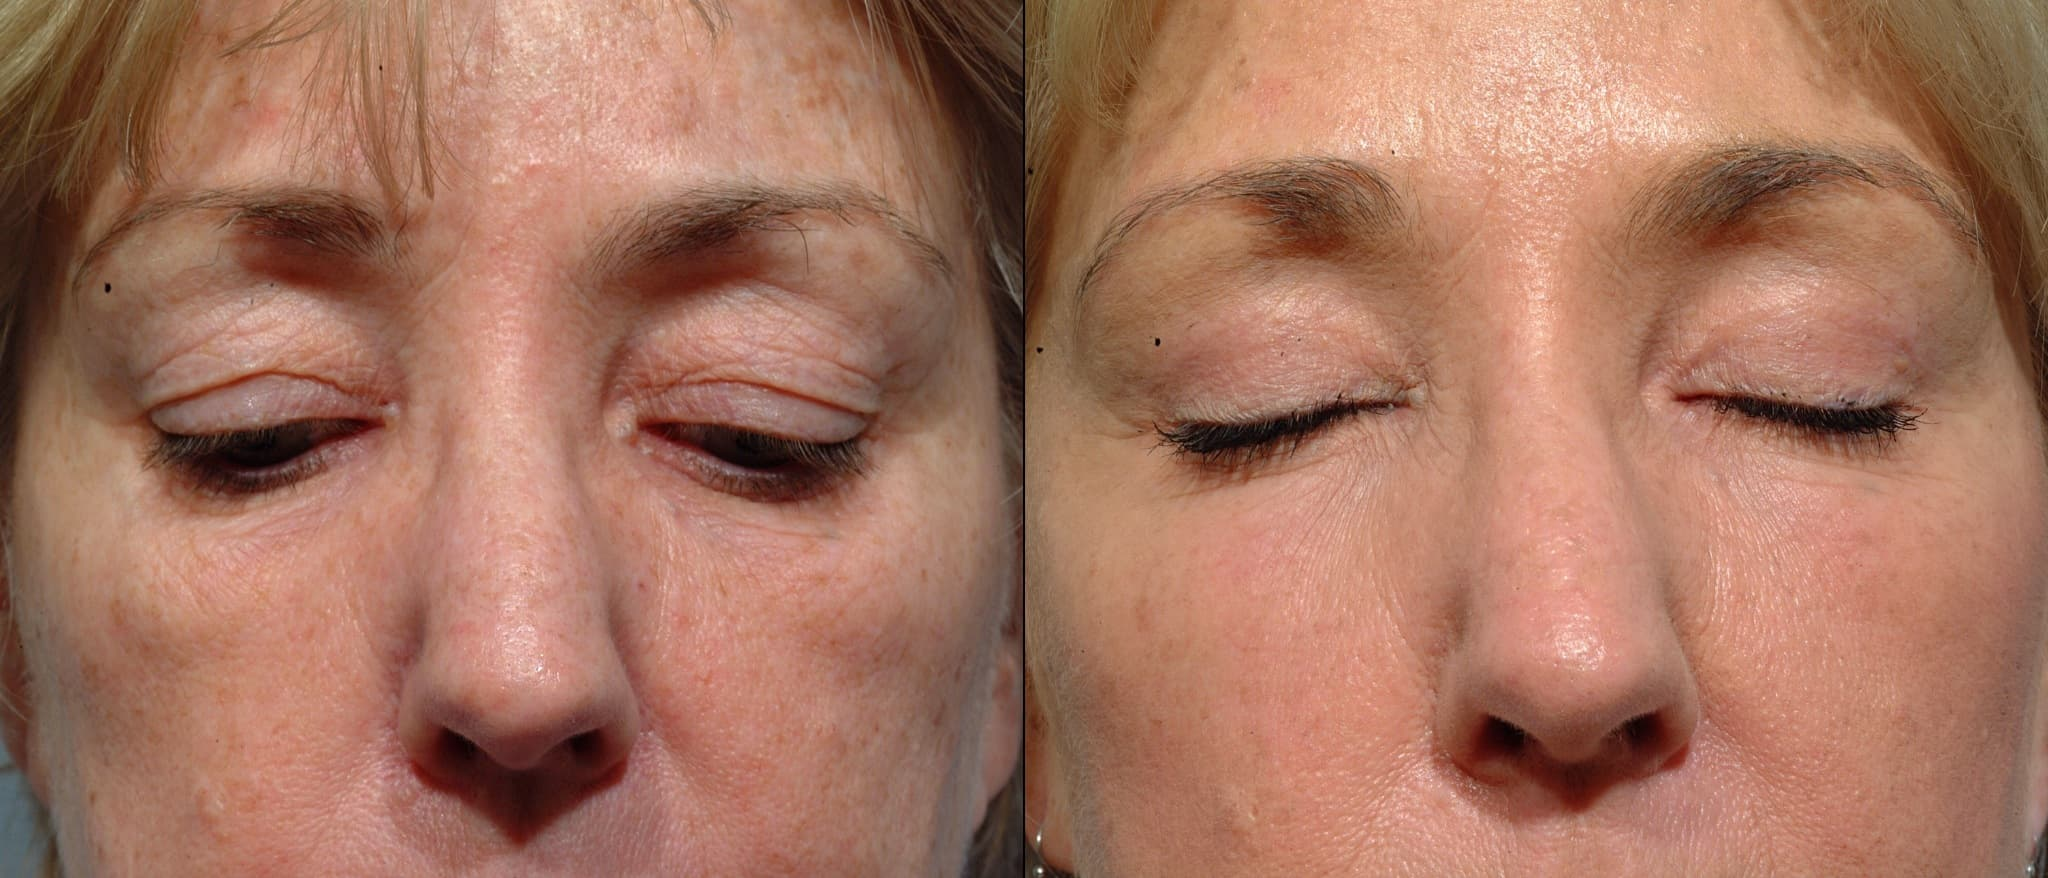 Lower Eyelid Plastic Surgery Before After 1